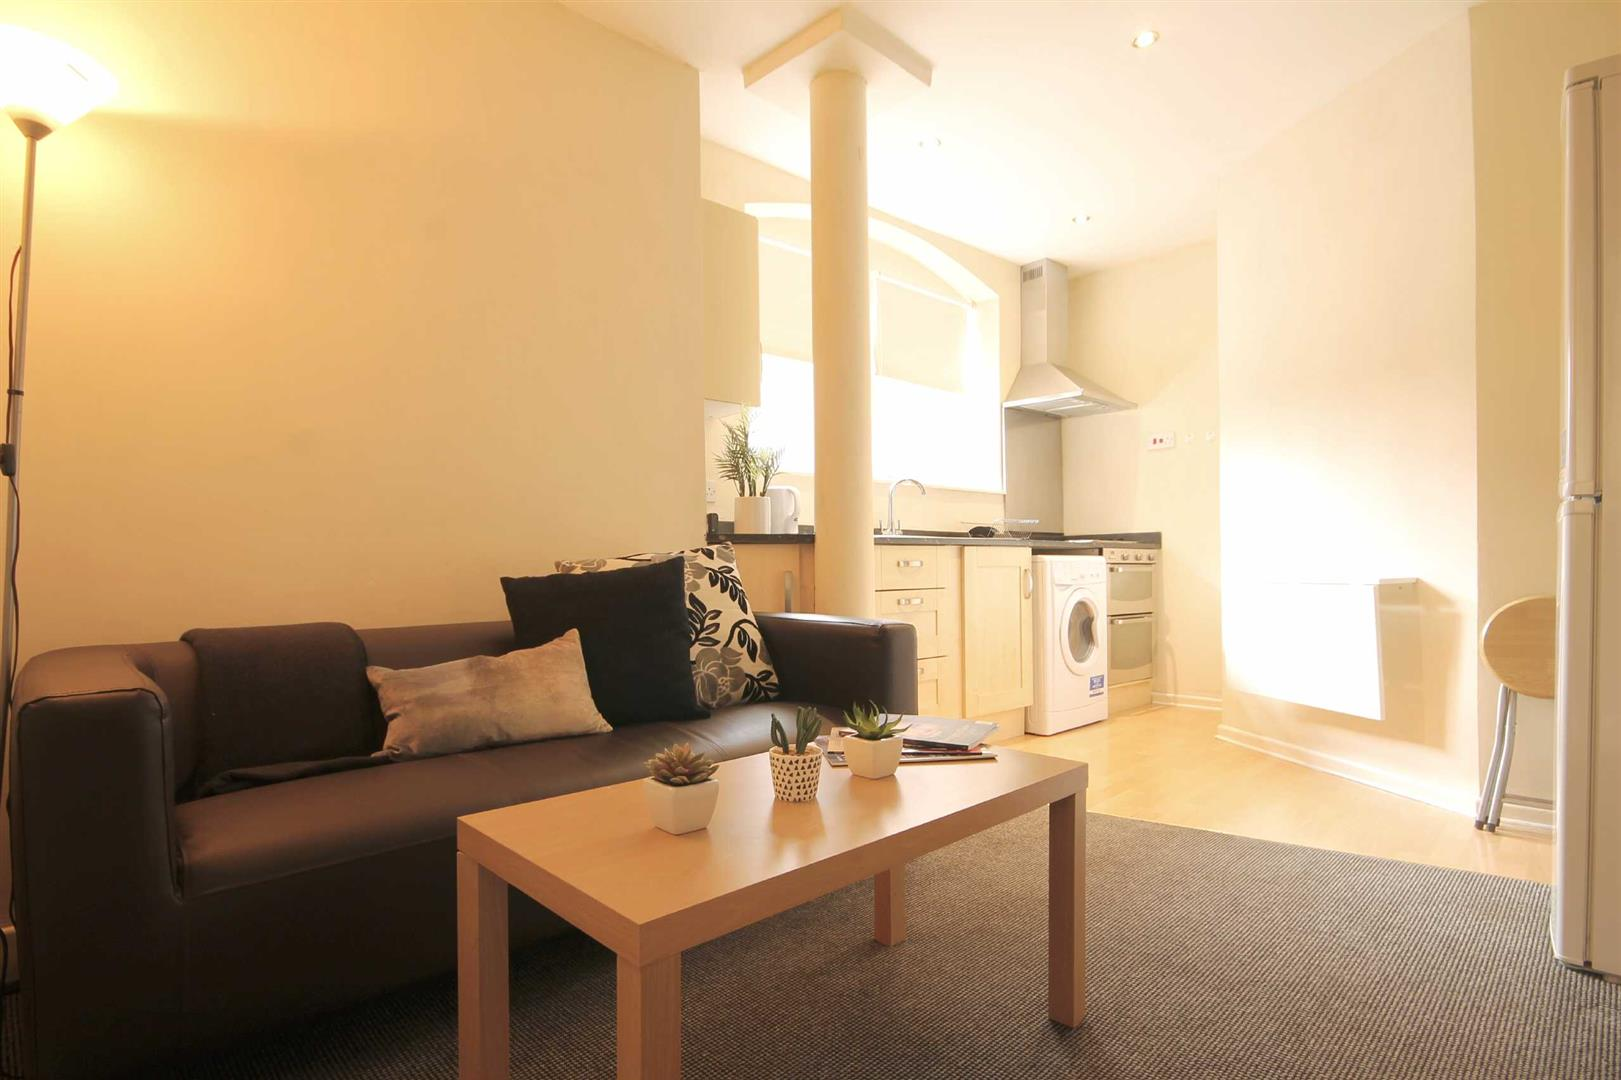 Peel House Newcastle Upon, 2 Bedrooms  Apartment ,1 Receptions ,Sold (STC)